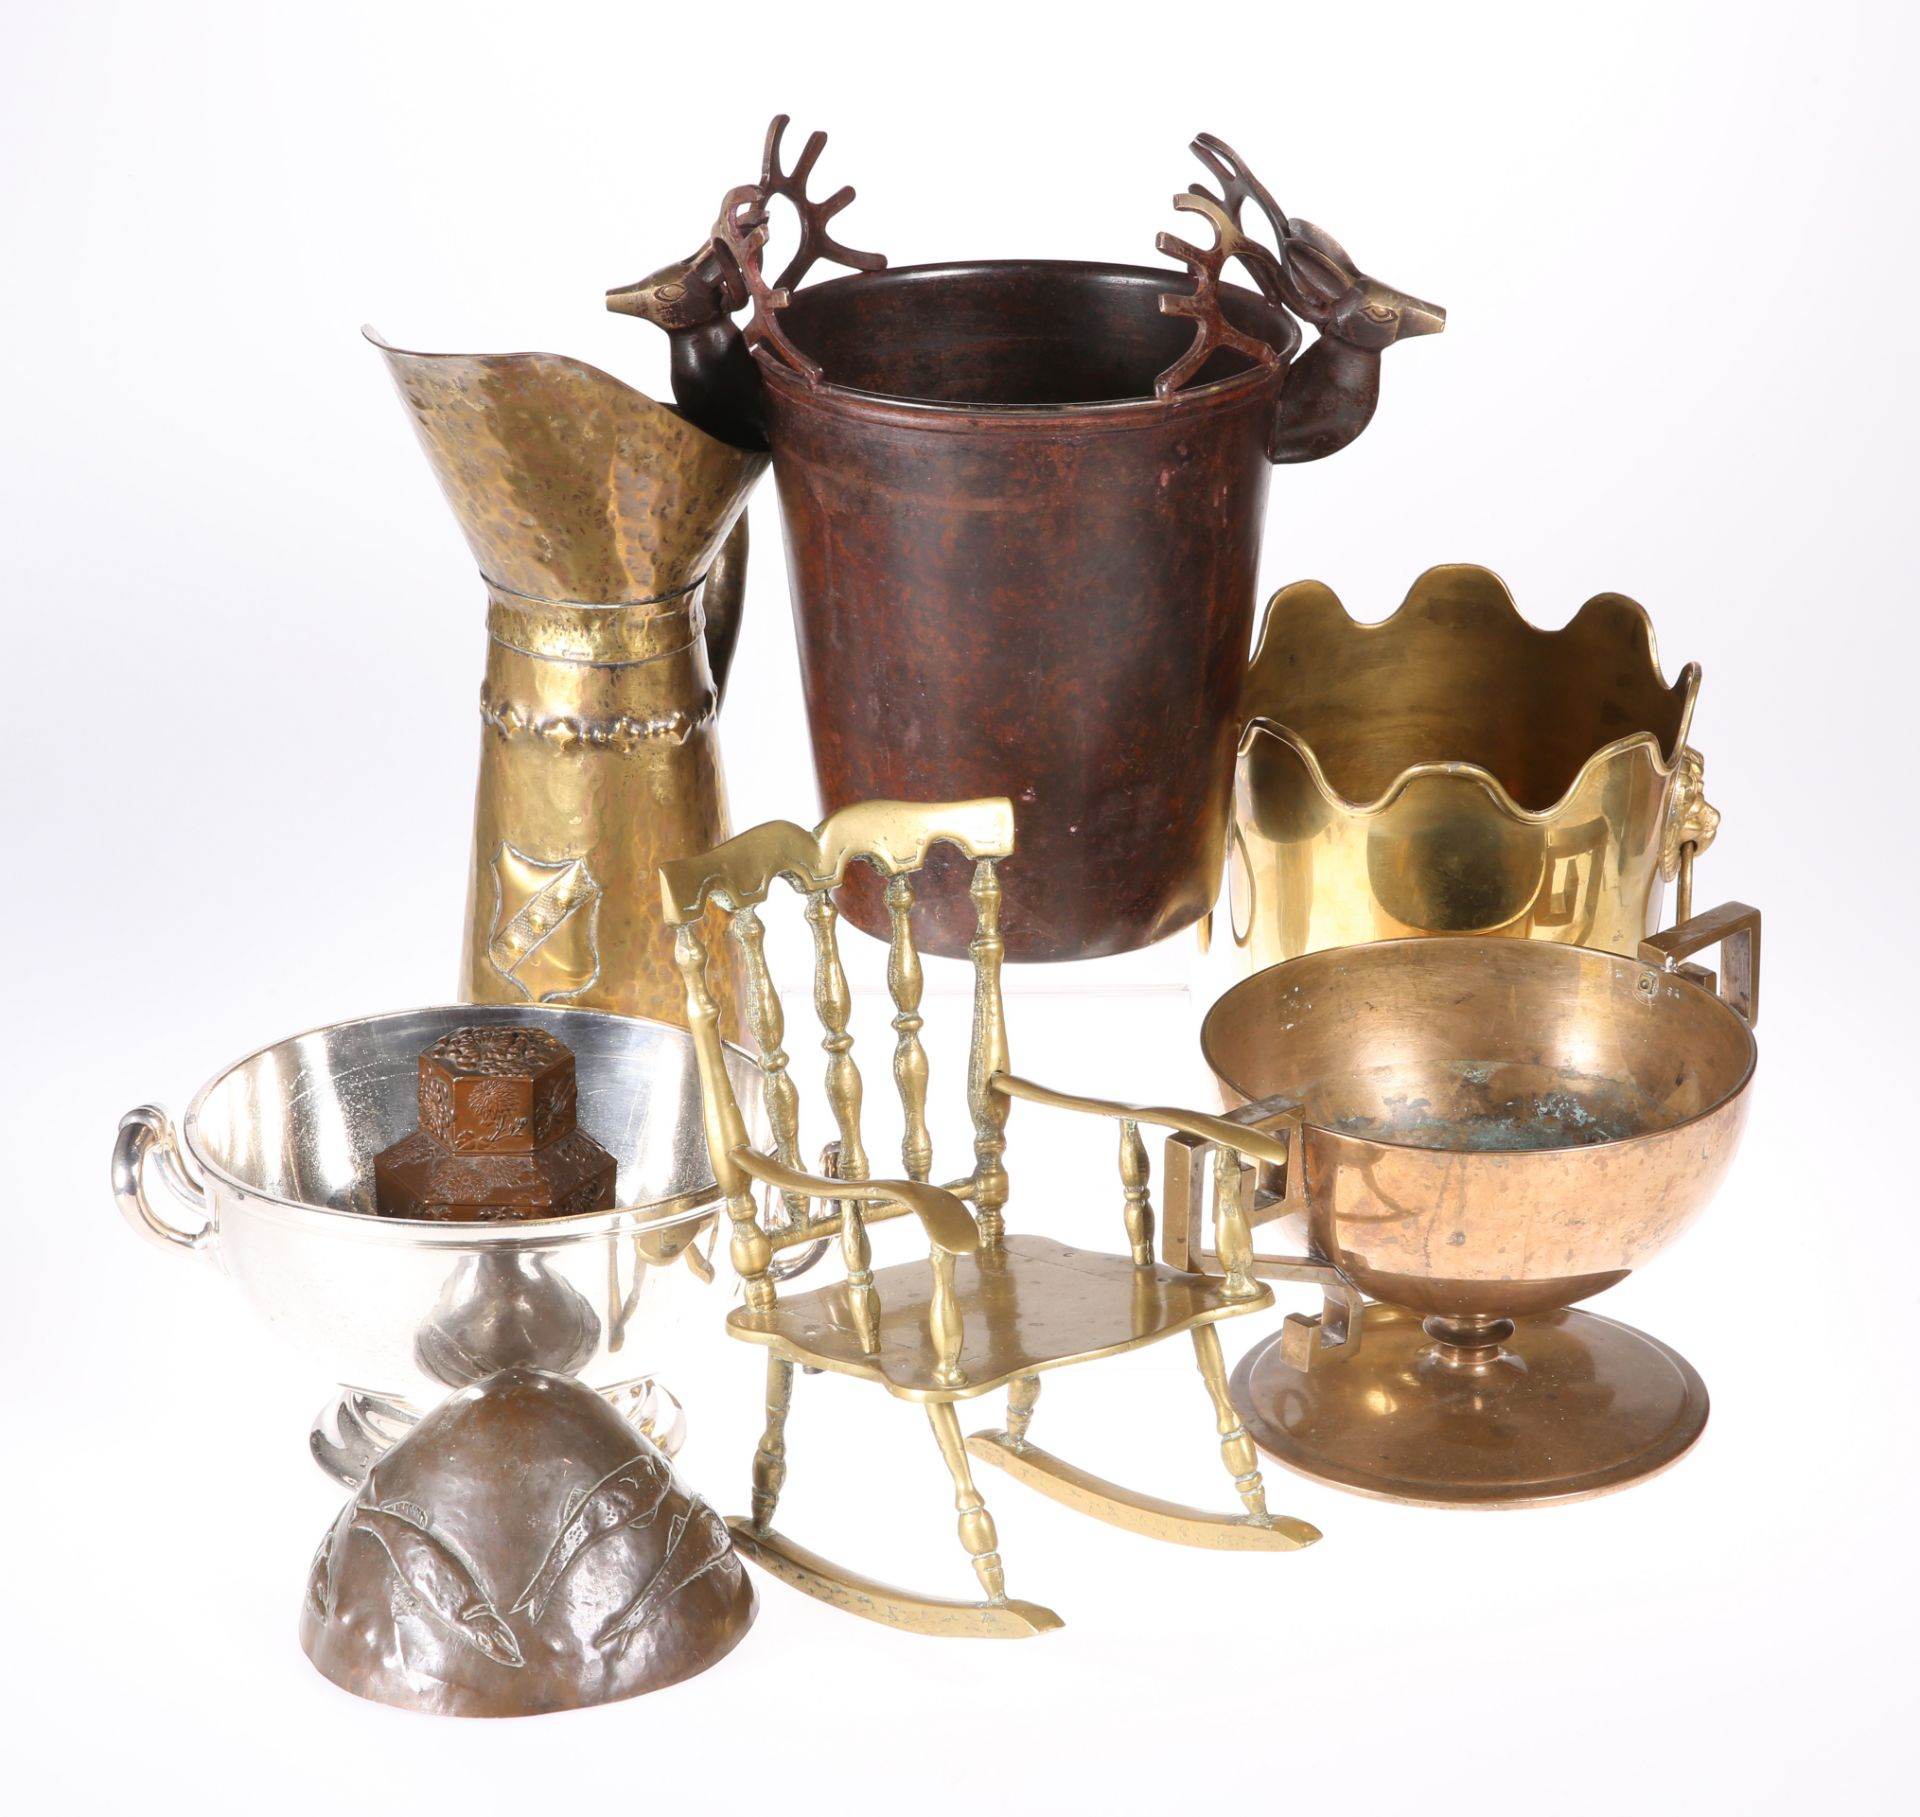 A GROUP OF METALWORK, including brass miniature rocking chair; Chinese tea caddy; silver-plated